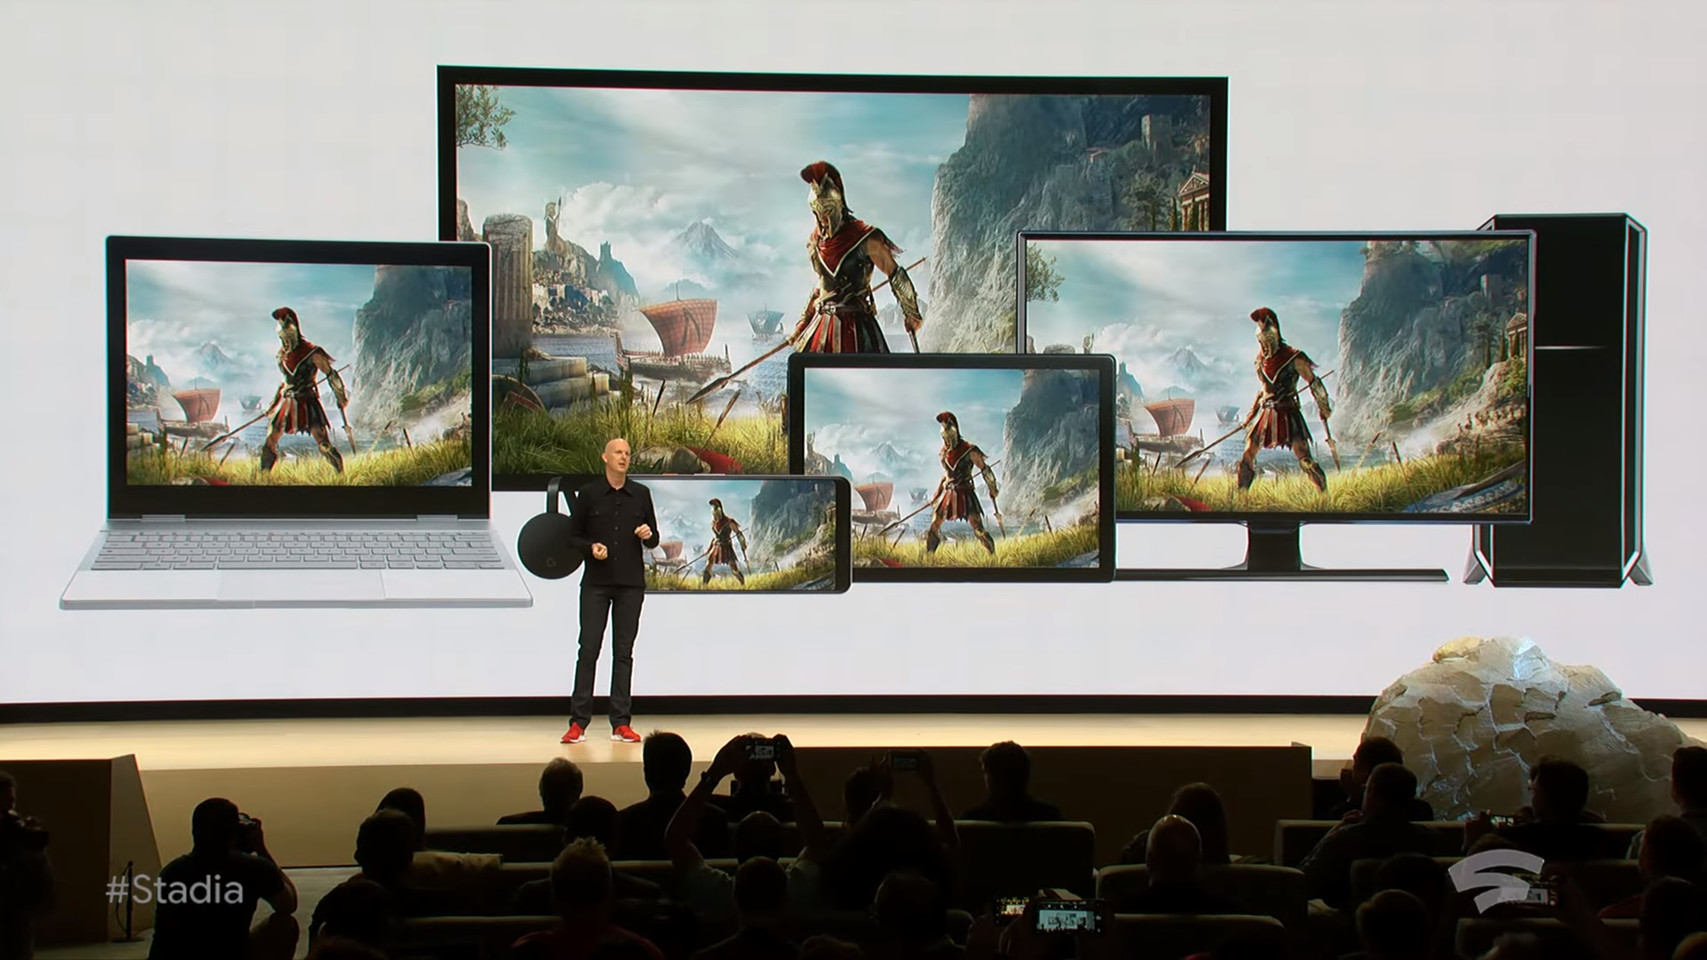 Google Announces Stadia Cloud Gaming Service at GDC 2019